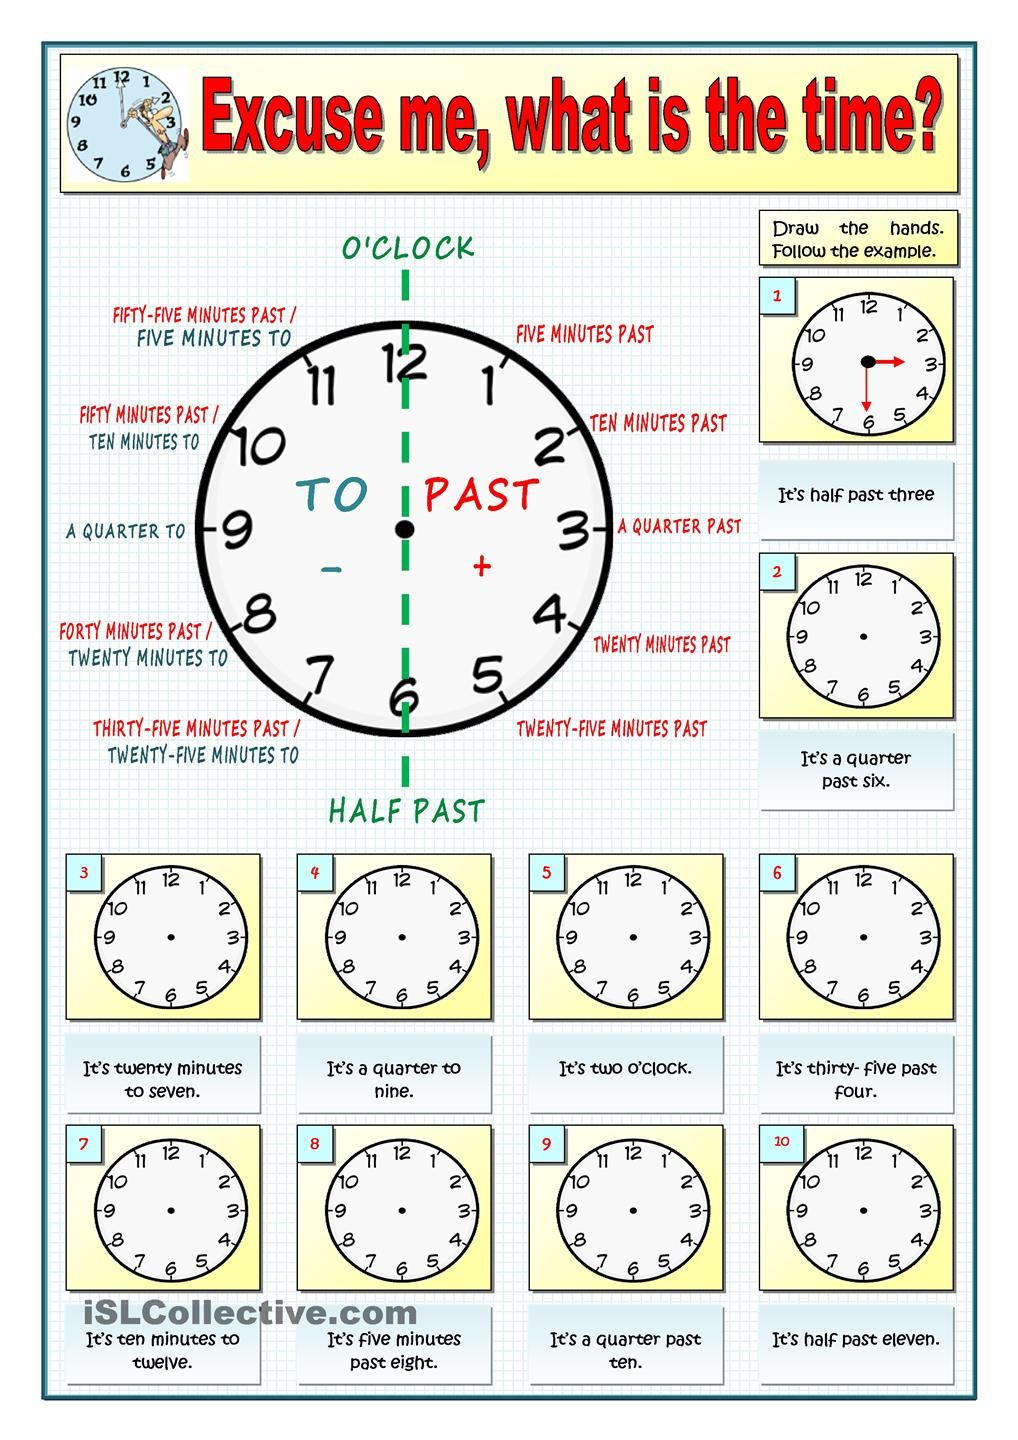 EXCUSE ME, WHAT IS THE TIME   PART 20   Imparare inglese, Pagine di ...